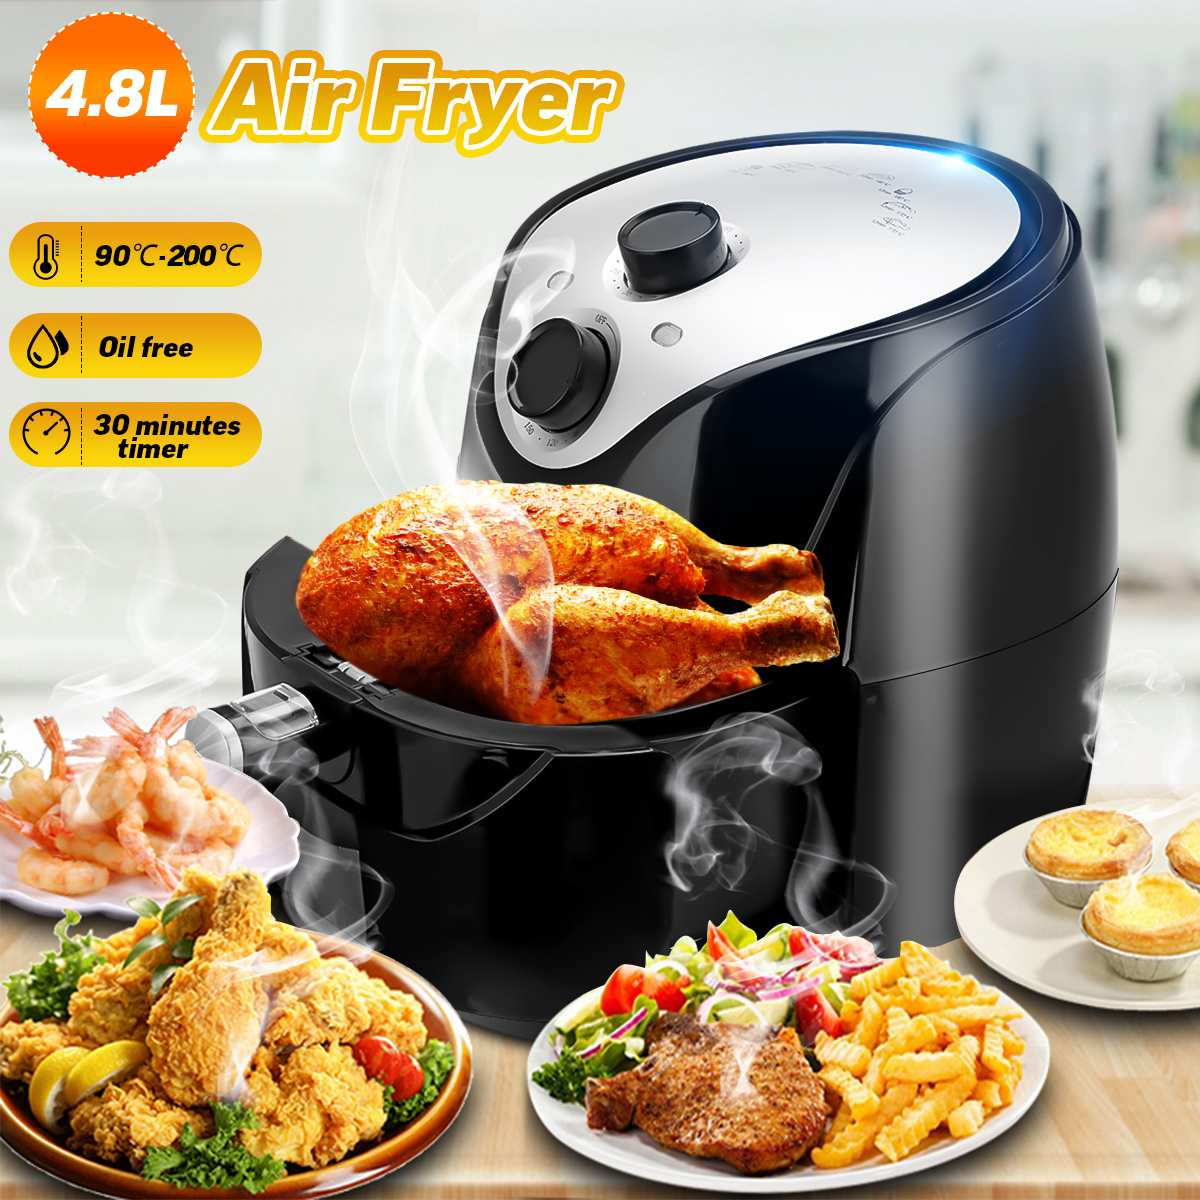 4.8L Air Fryer Electric Deep Fryer 1500W 220V Health Chip Oil Free Oven Cooker Timmer Control Multi-function Non-stick Pot